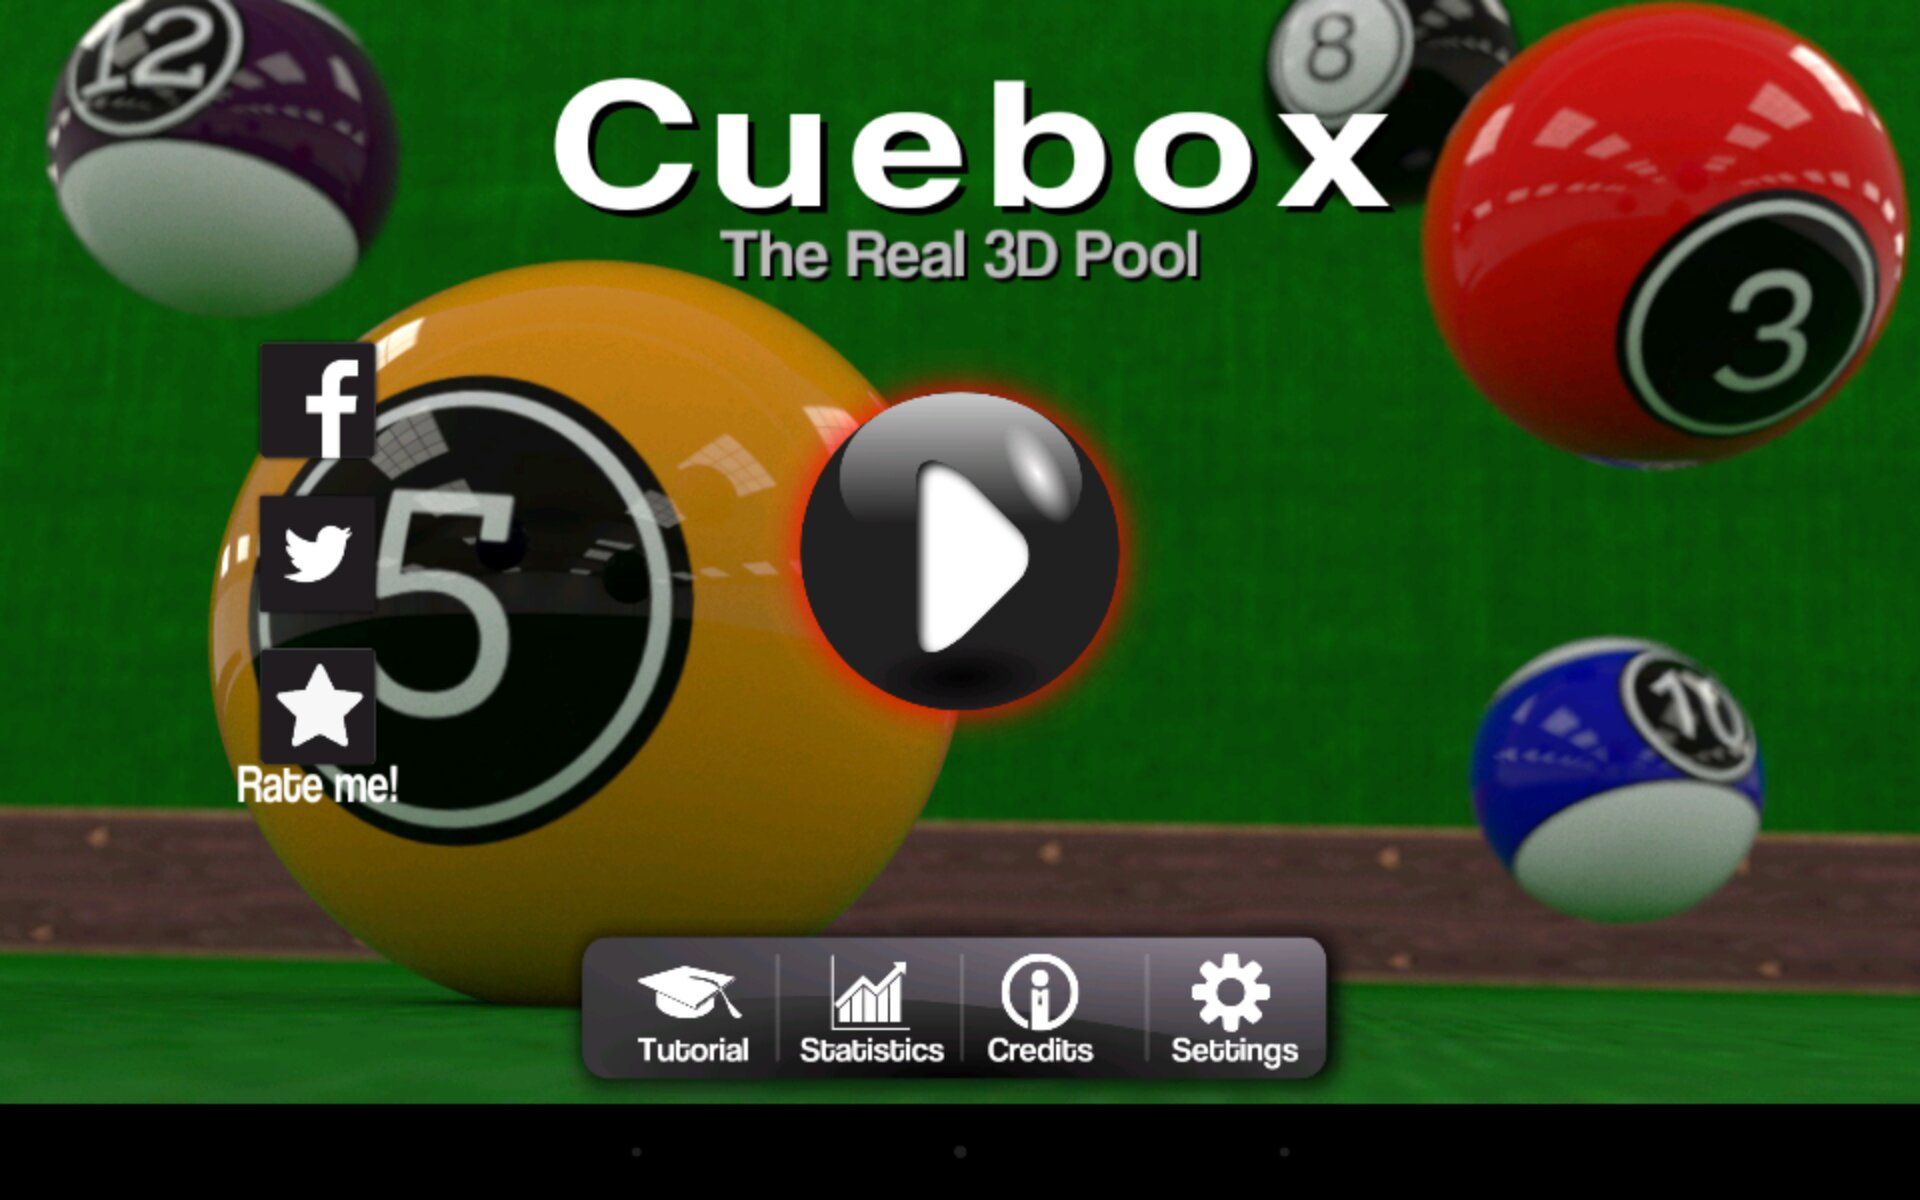 Cuebox 3D Pool Game Review